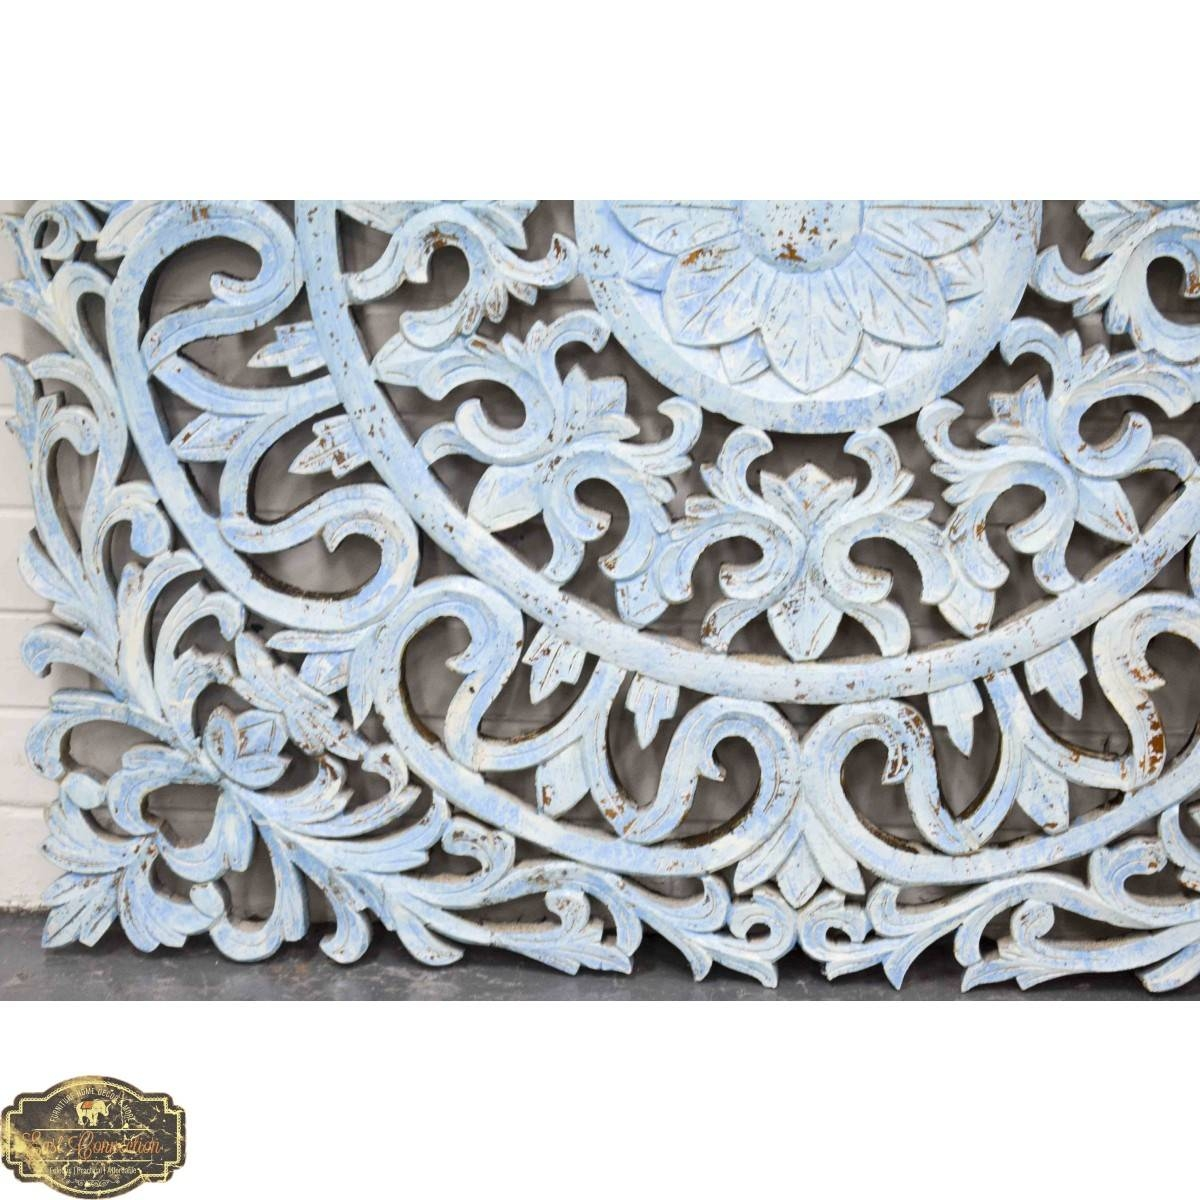 Hand Carved Antique Pattern Timber Wall Art Panel Intended For Current Pattern Wall Art (View 9 of 20)